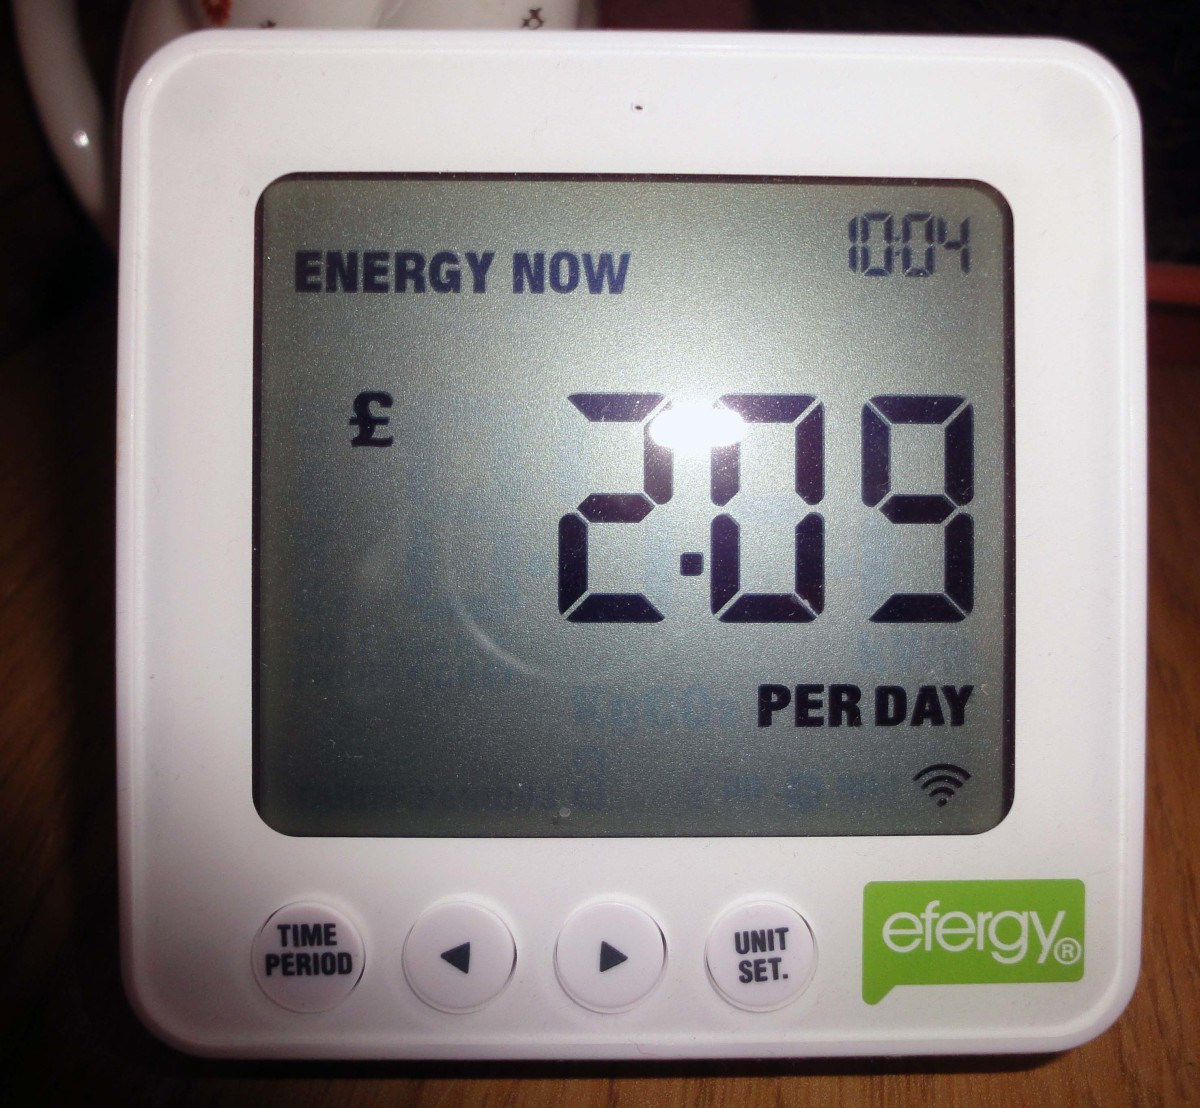 As previous image plus with lights in hall and landing switched on e.g. an extra 2p an hour.